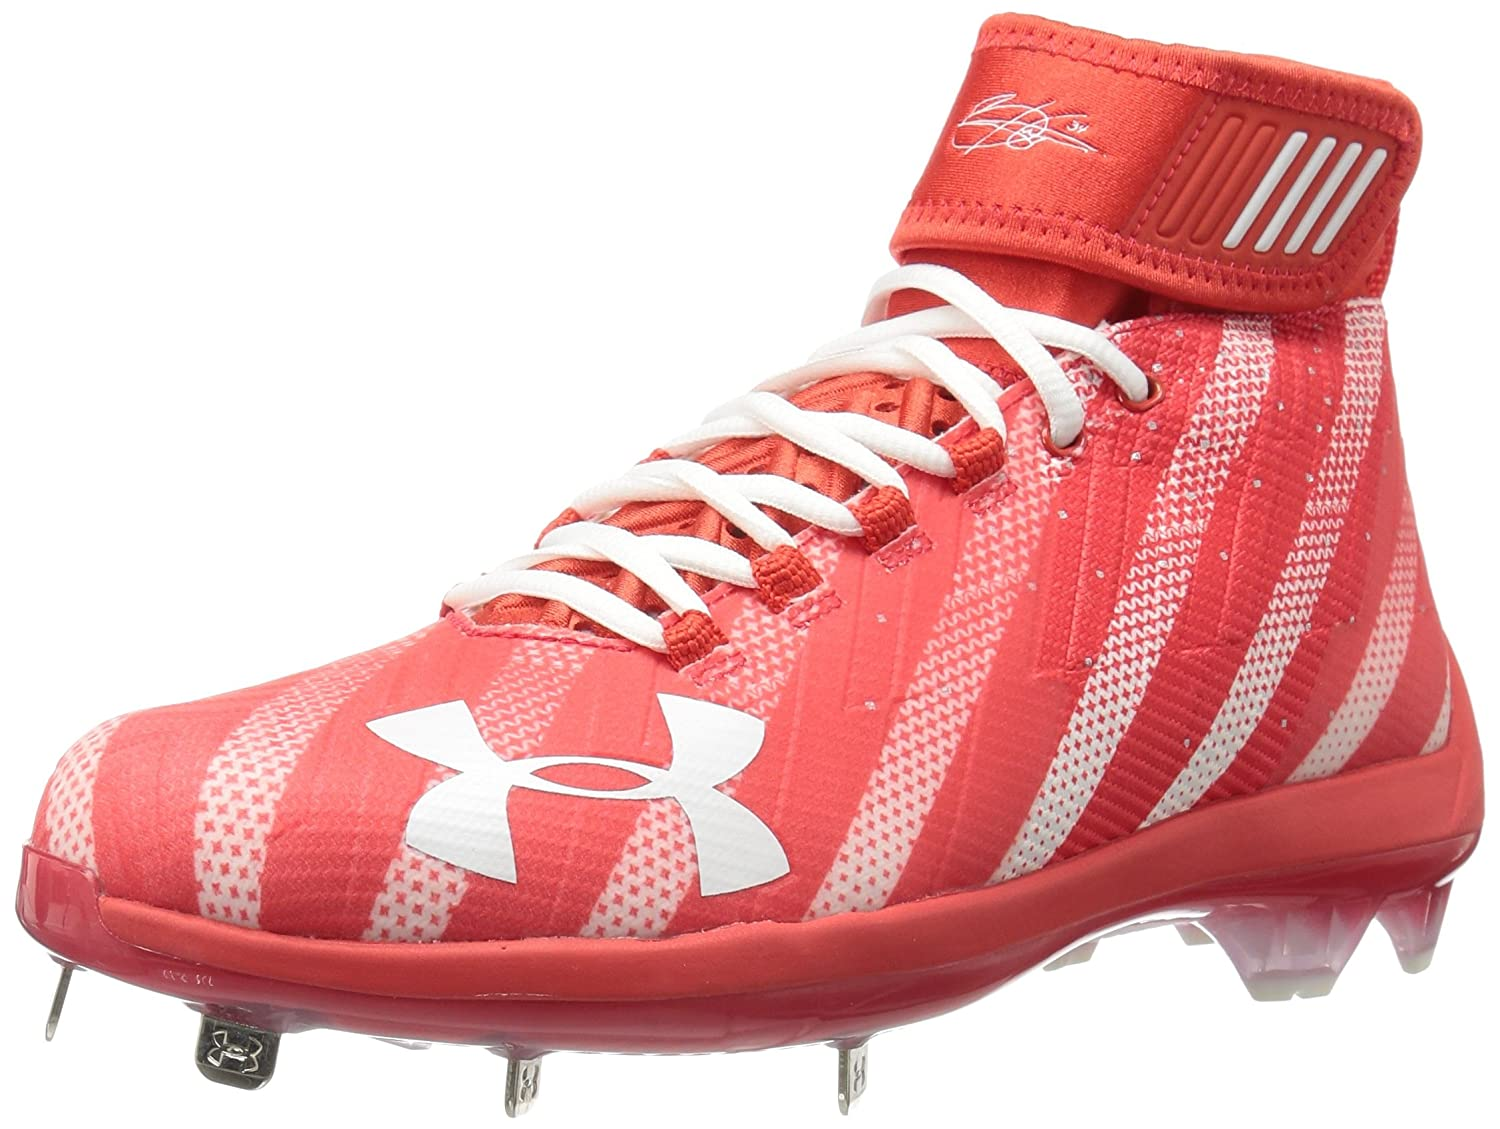 Under Armour メンズ 1301957 B06XH93DBV  Red (614)/White 6.5 D(M) US